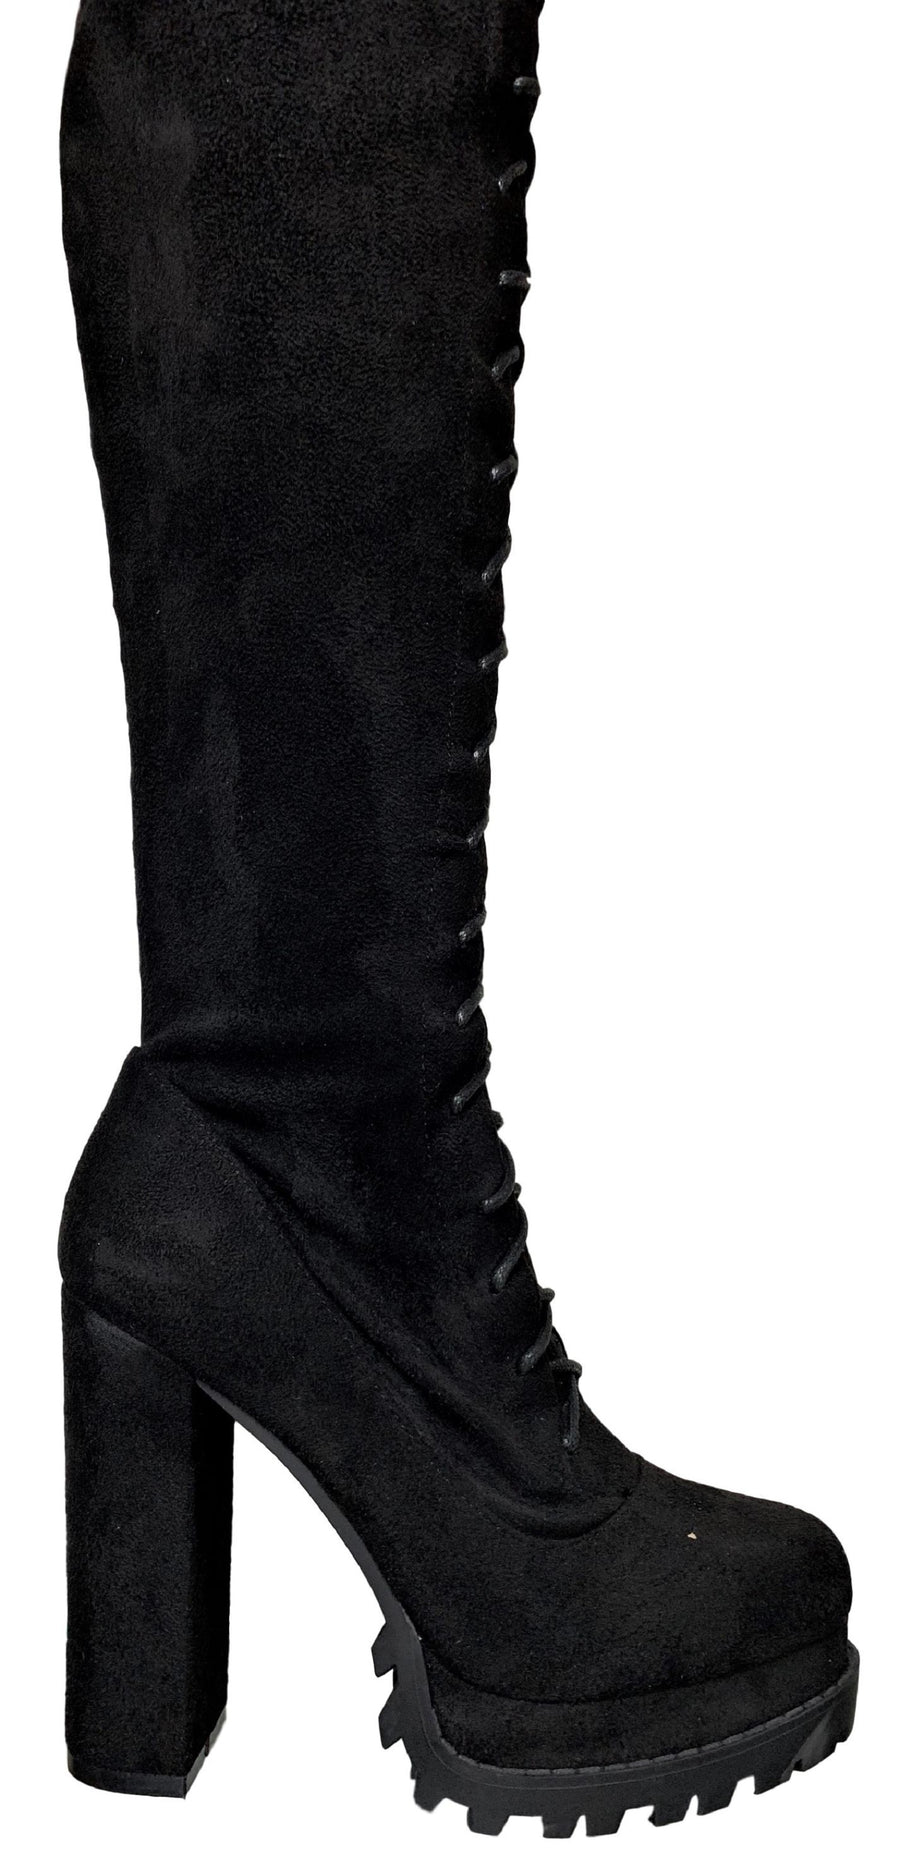 Vivian-11 Women Faux Suede Over Knee Lace Up Side Zipper Platform Lug Sole Chunky Block Heel Combat Boots